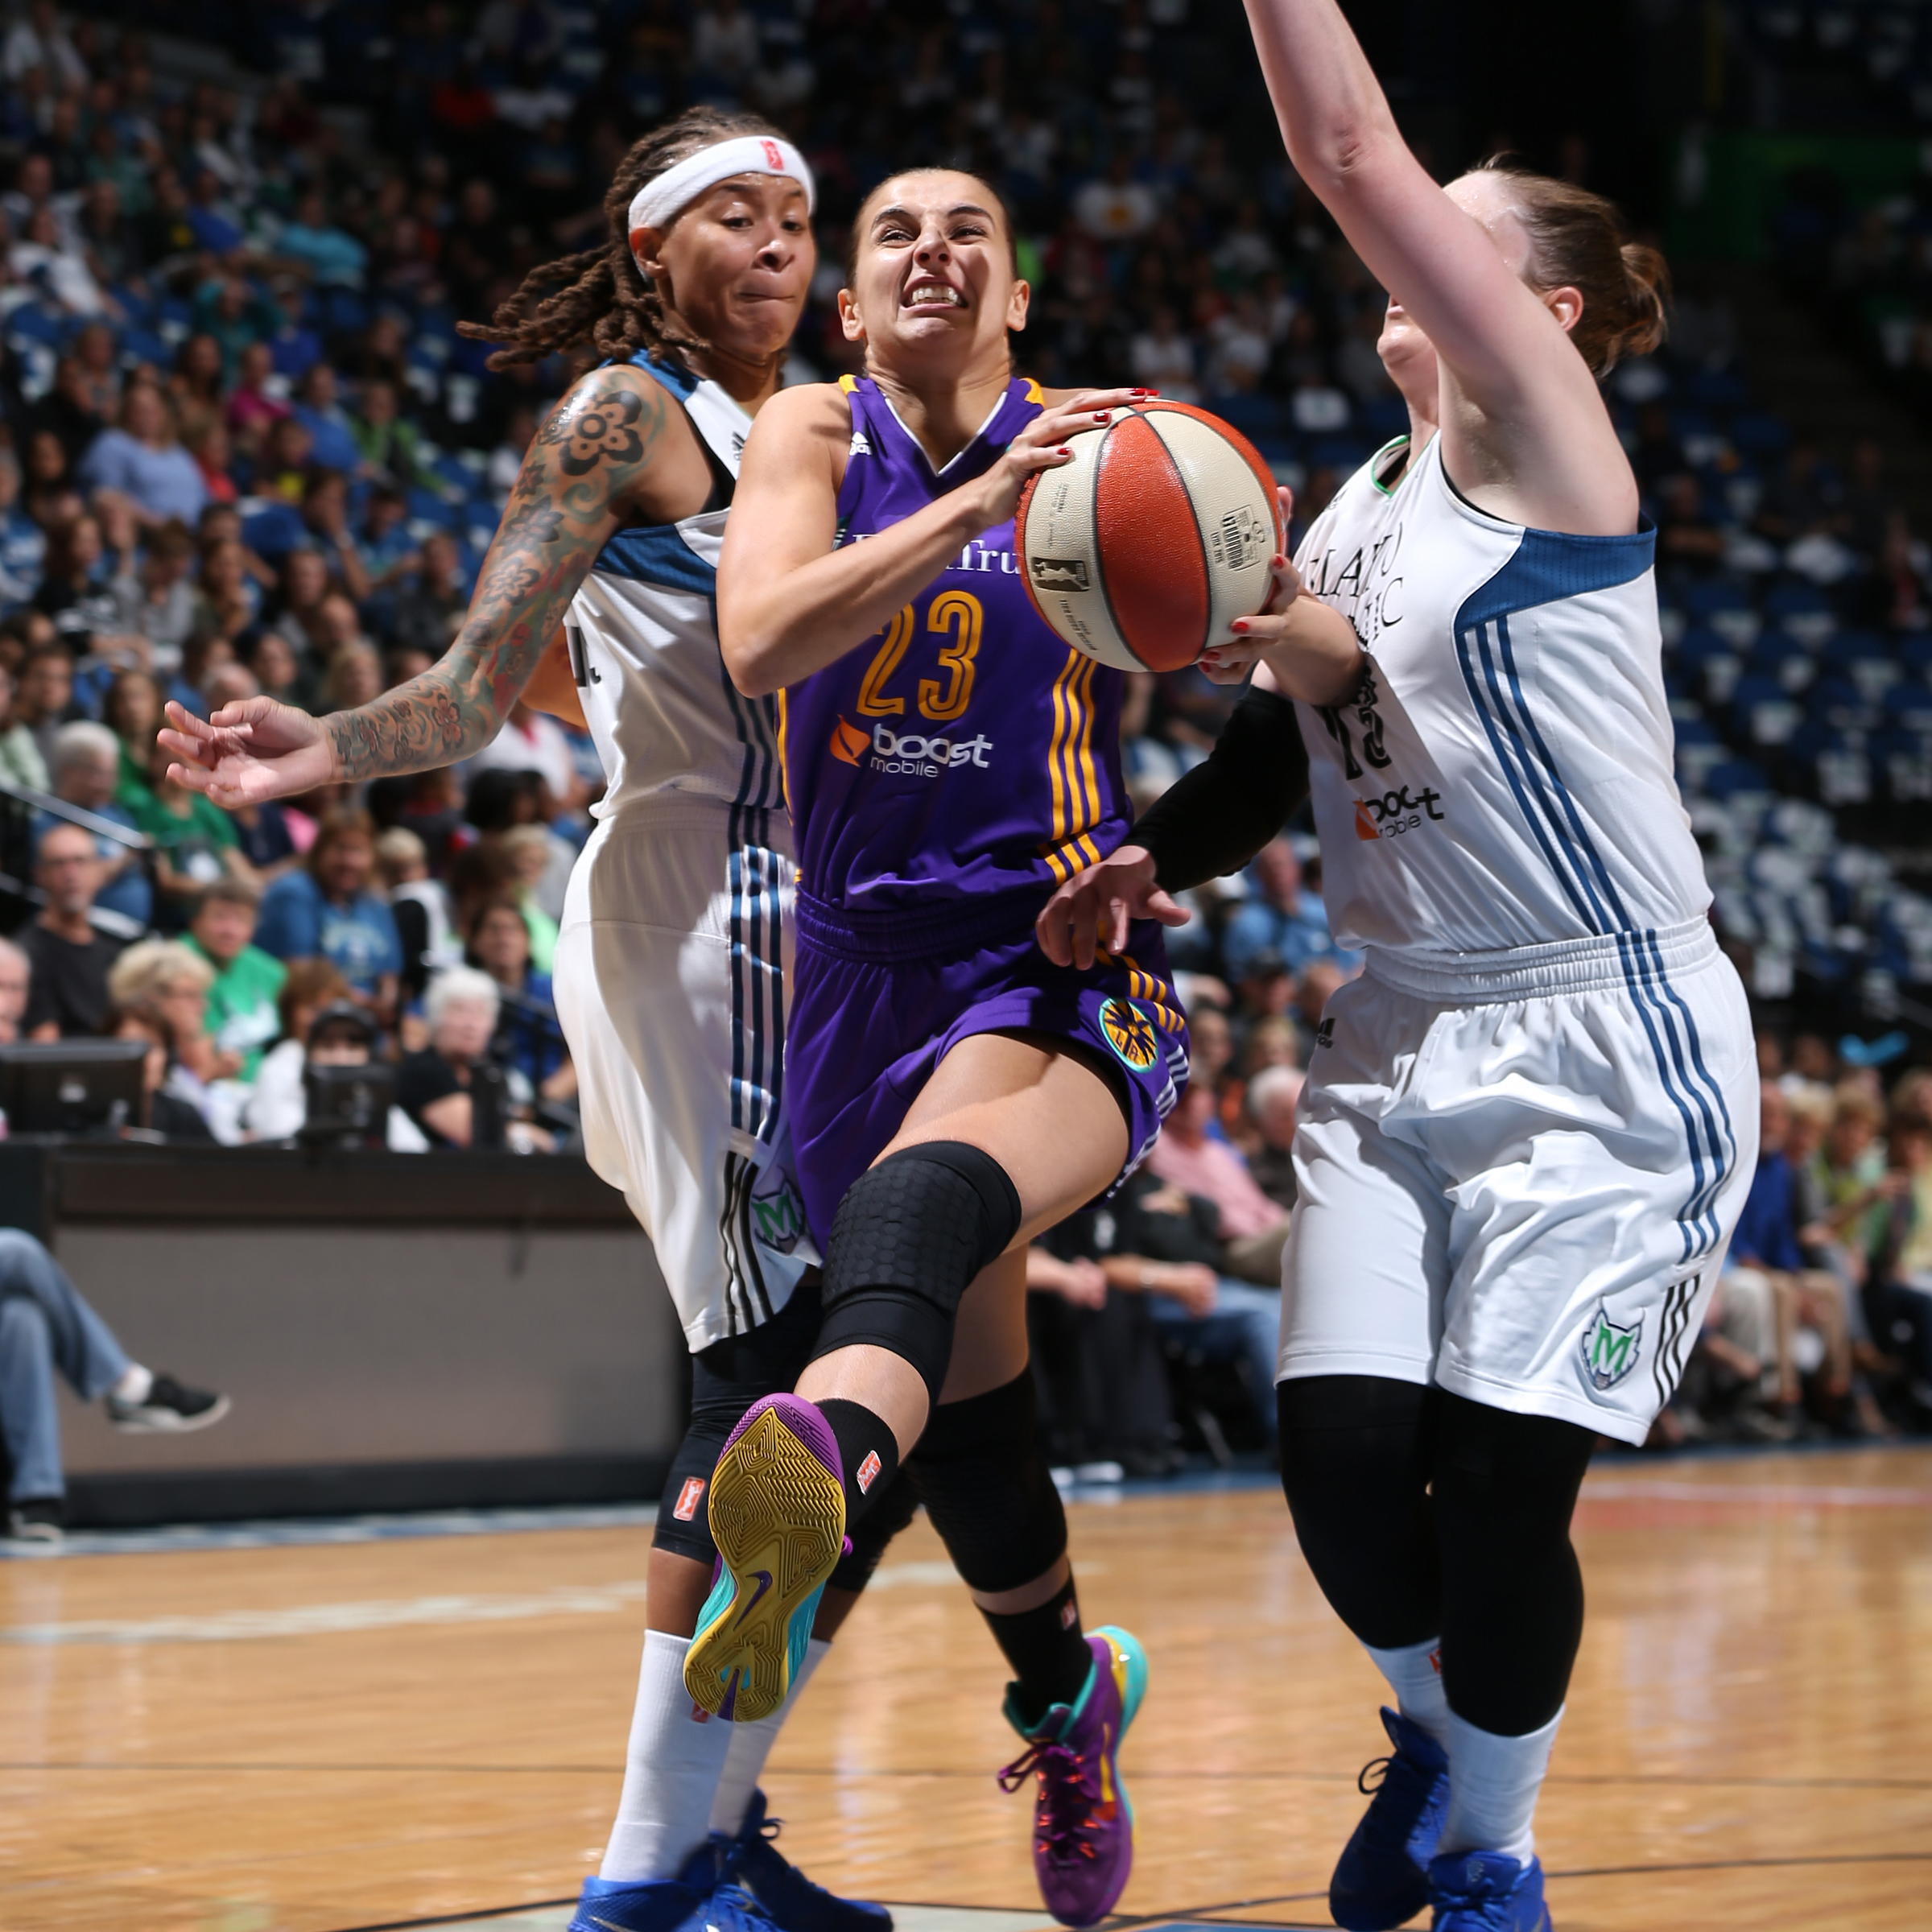 MINNEAPOLIS, MN - SEPTEMBER 18:  Ana Dabovic #23 of the Los Angeles Sparks drives to the basket against the Minnesota Lynx during Game 1 of the 2015 WNBA Western Conference Semifinal on September 18, 2015 at Target Center in Minneapolis, Minnesota.  NOTE TO USER: User expressly acknowledges and agrees that, by downloading and or using this Photograph, user is consenting to the terms and conditions of the Getty Images License Agreement. Mandatory Copyright Notice: Copyright 2015 NBAE (Photo by David Sherman/NBAE via Getty Images)